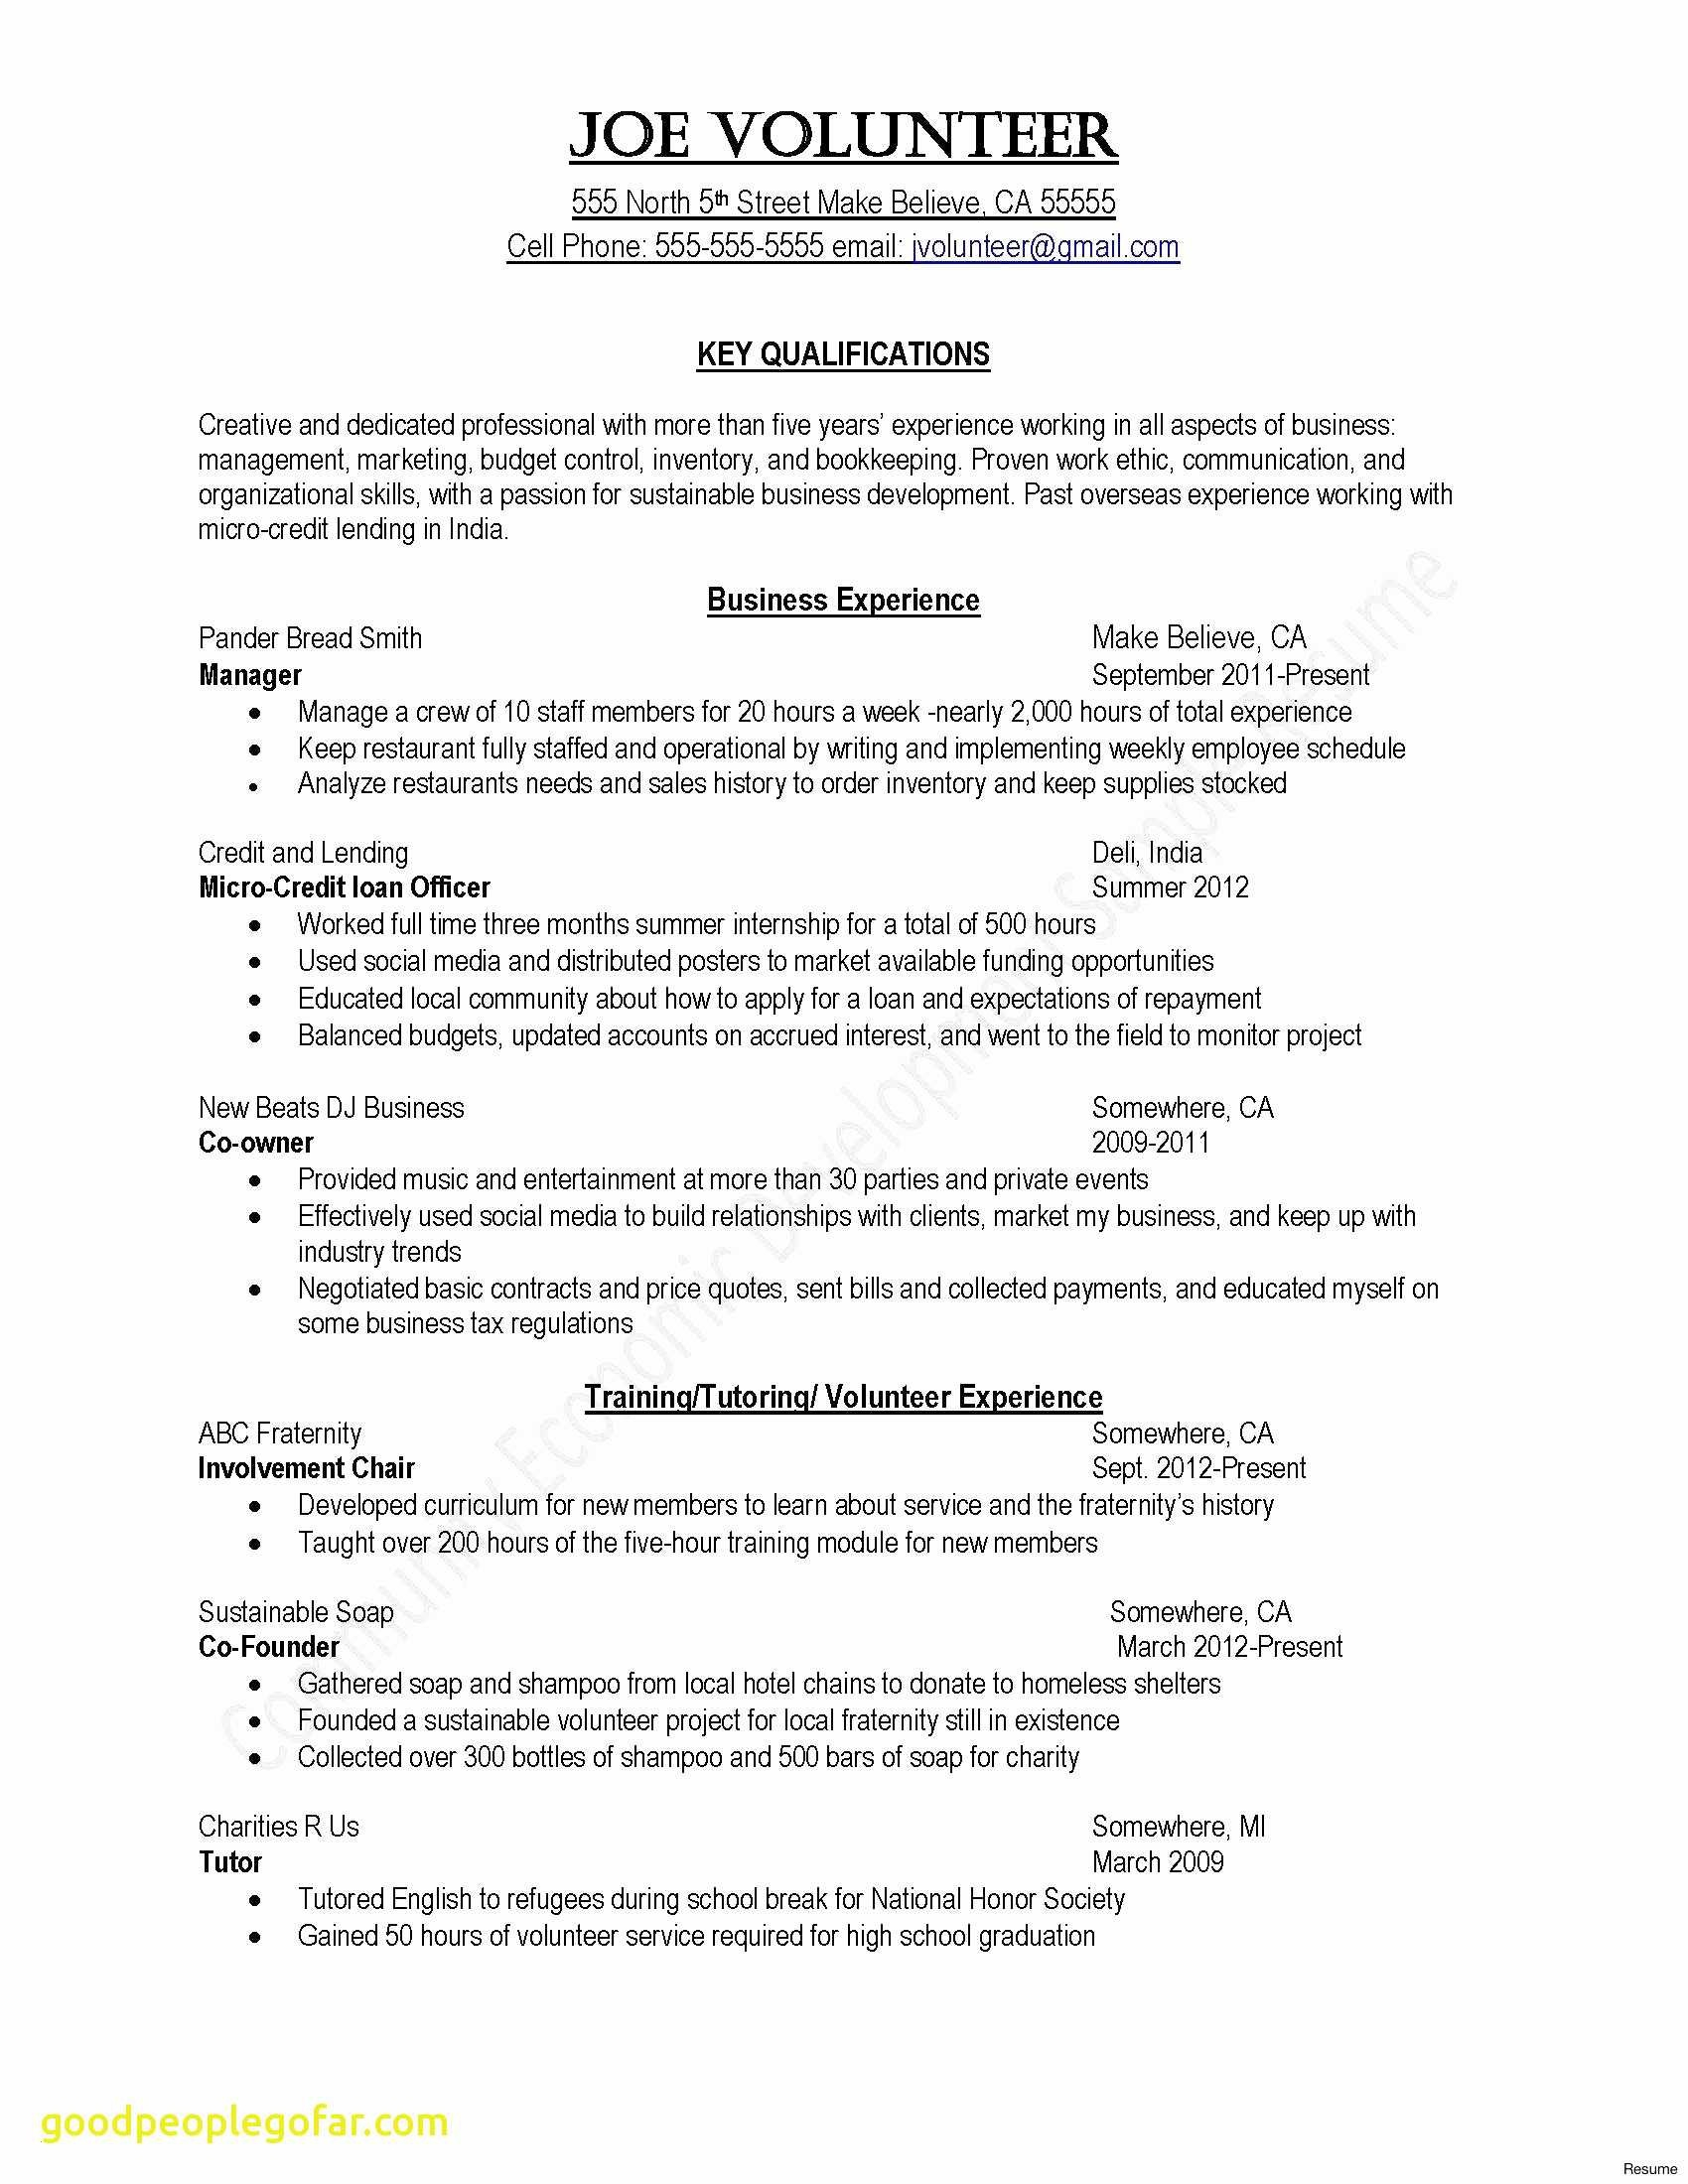 volunteer resume template example-Accounting Internship Resume Samples Unique Sample College Application Resume Lovely Painter Resume 0d 13-b